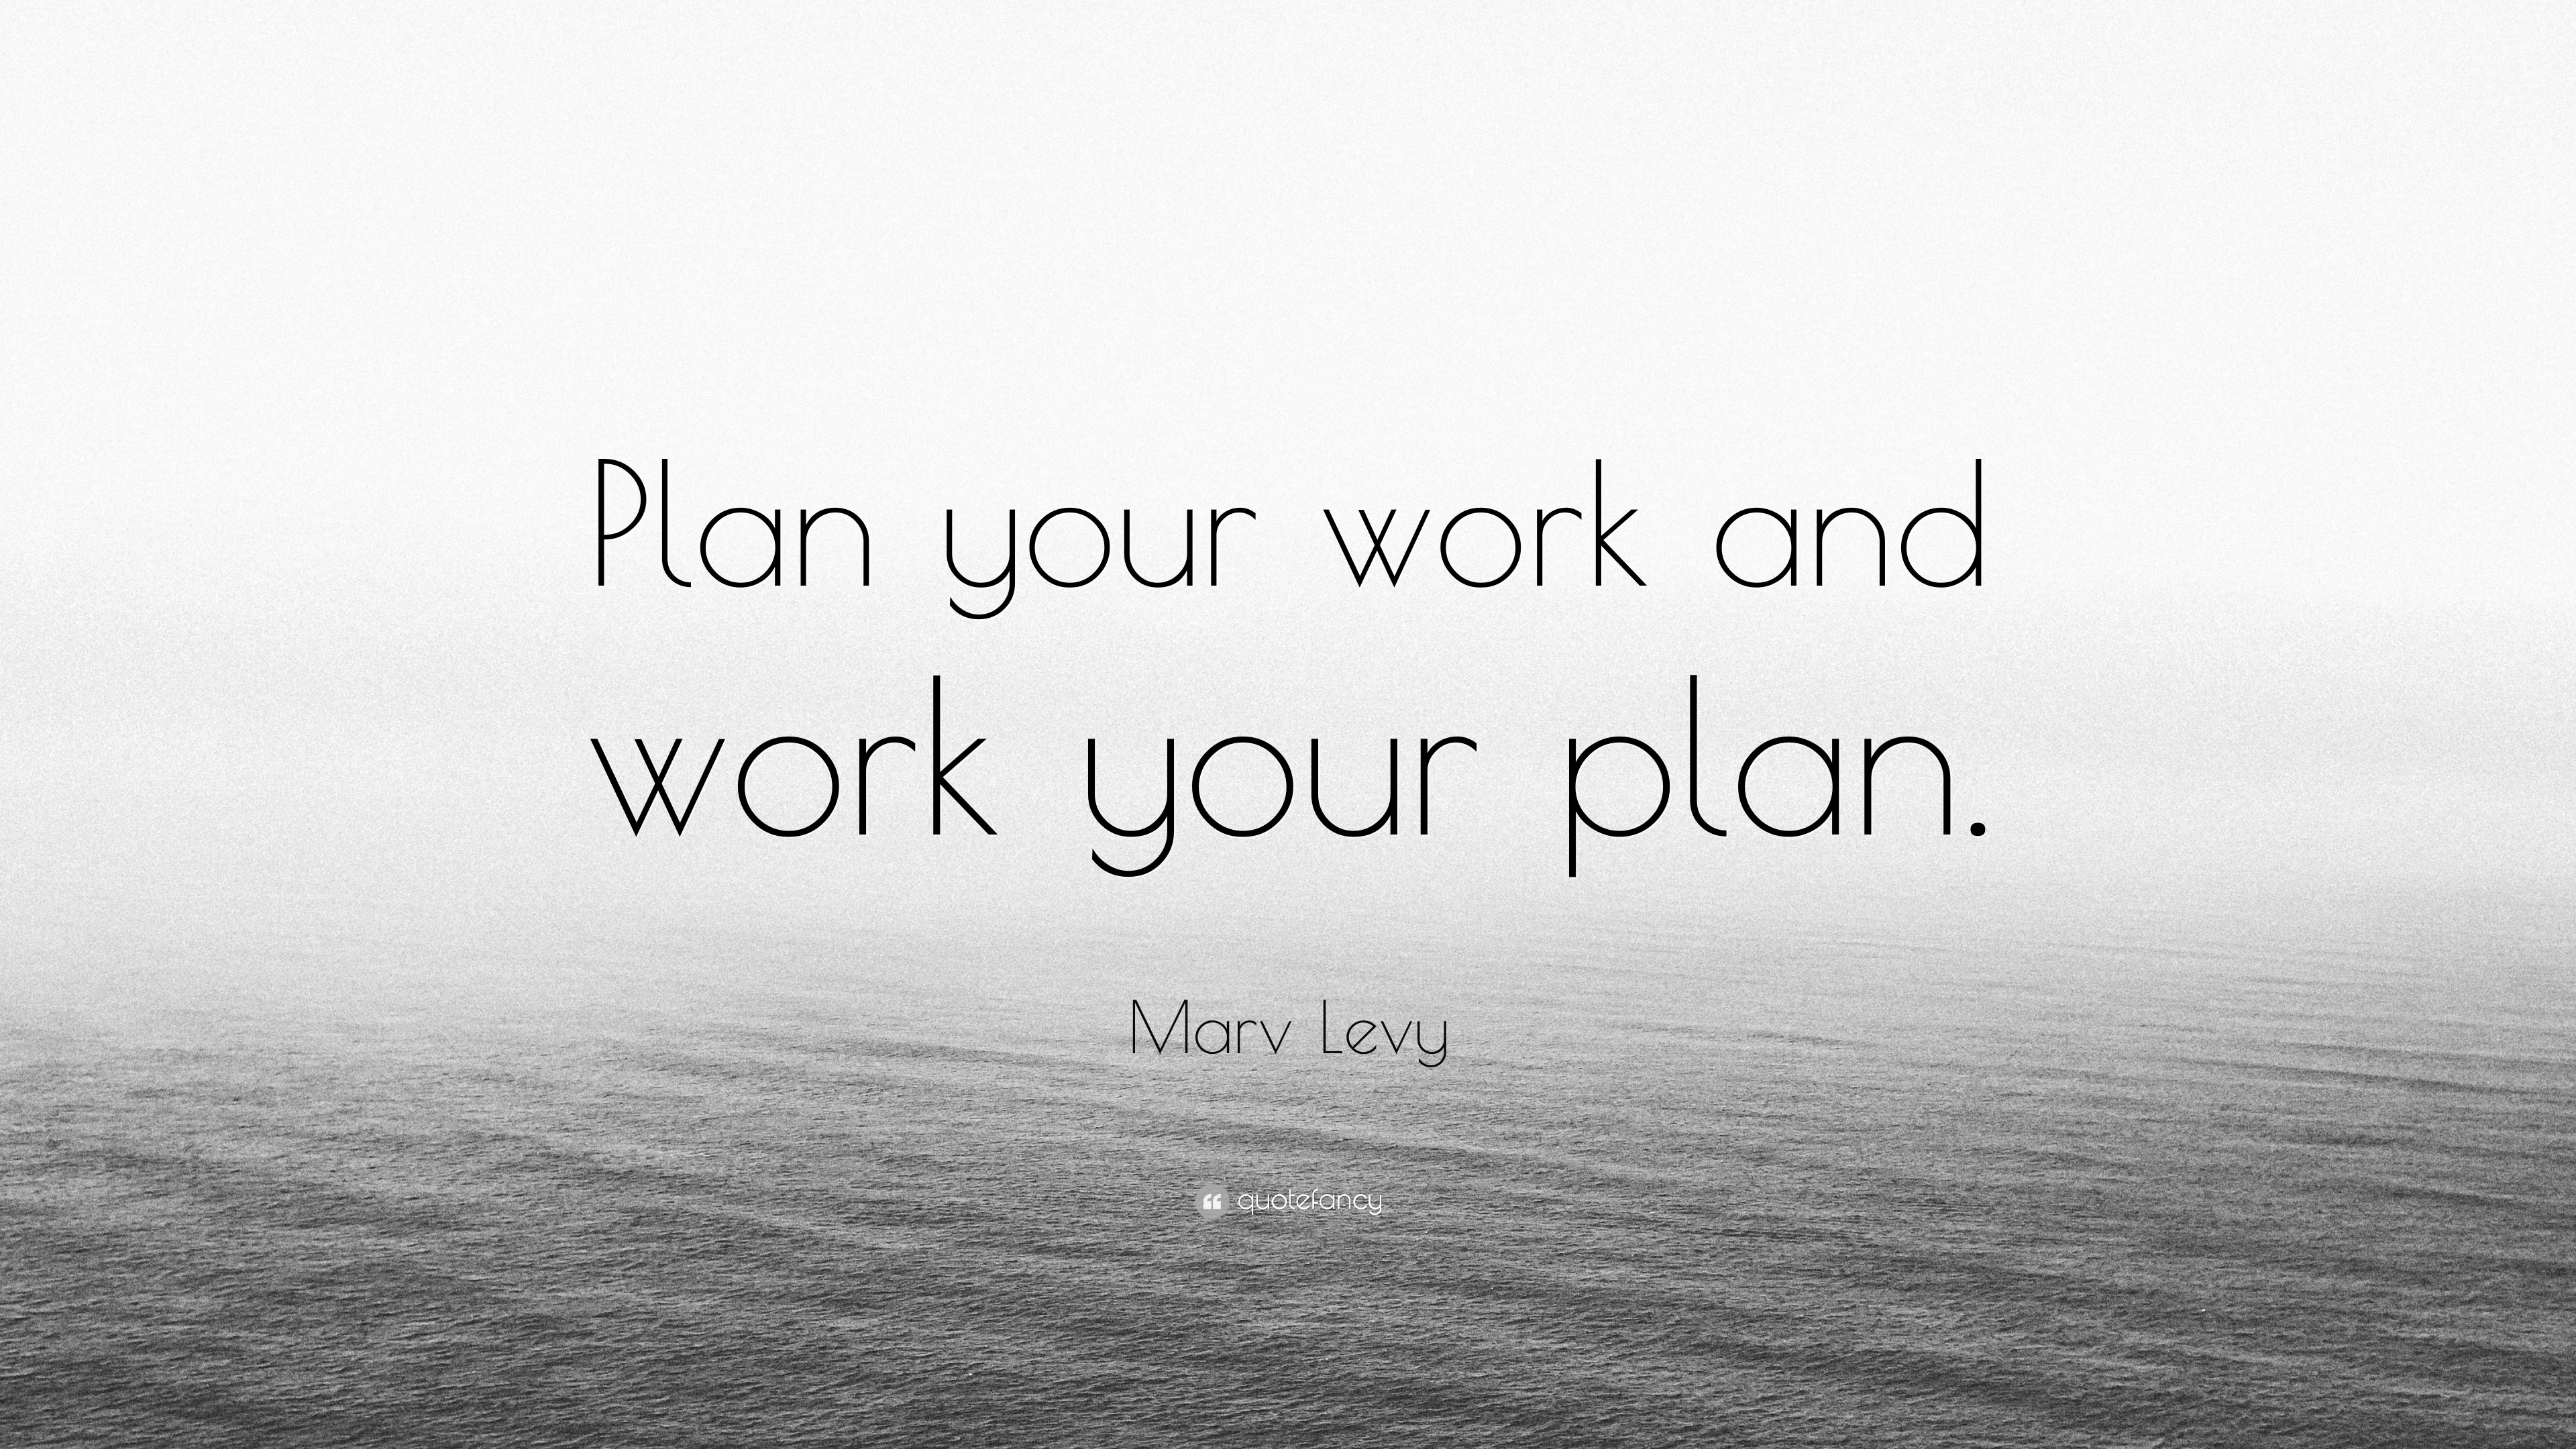 Marv Levy Quote Plan Your Work And Work Your Plan 7 Wallpapers